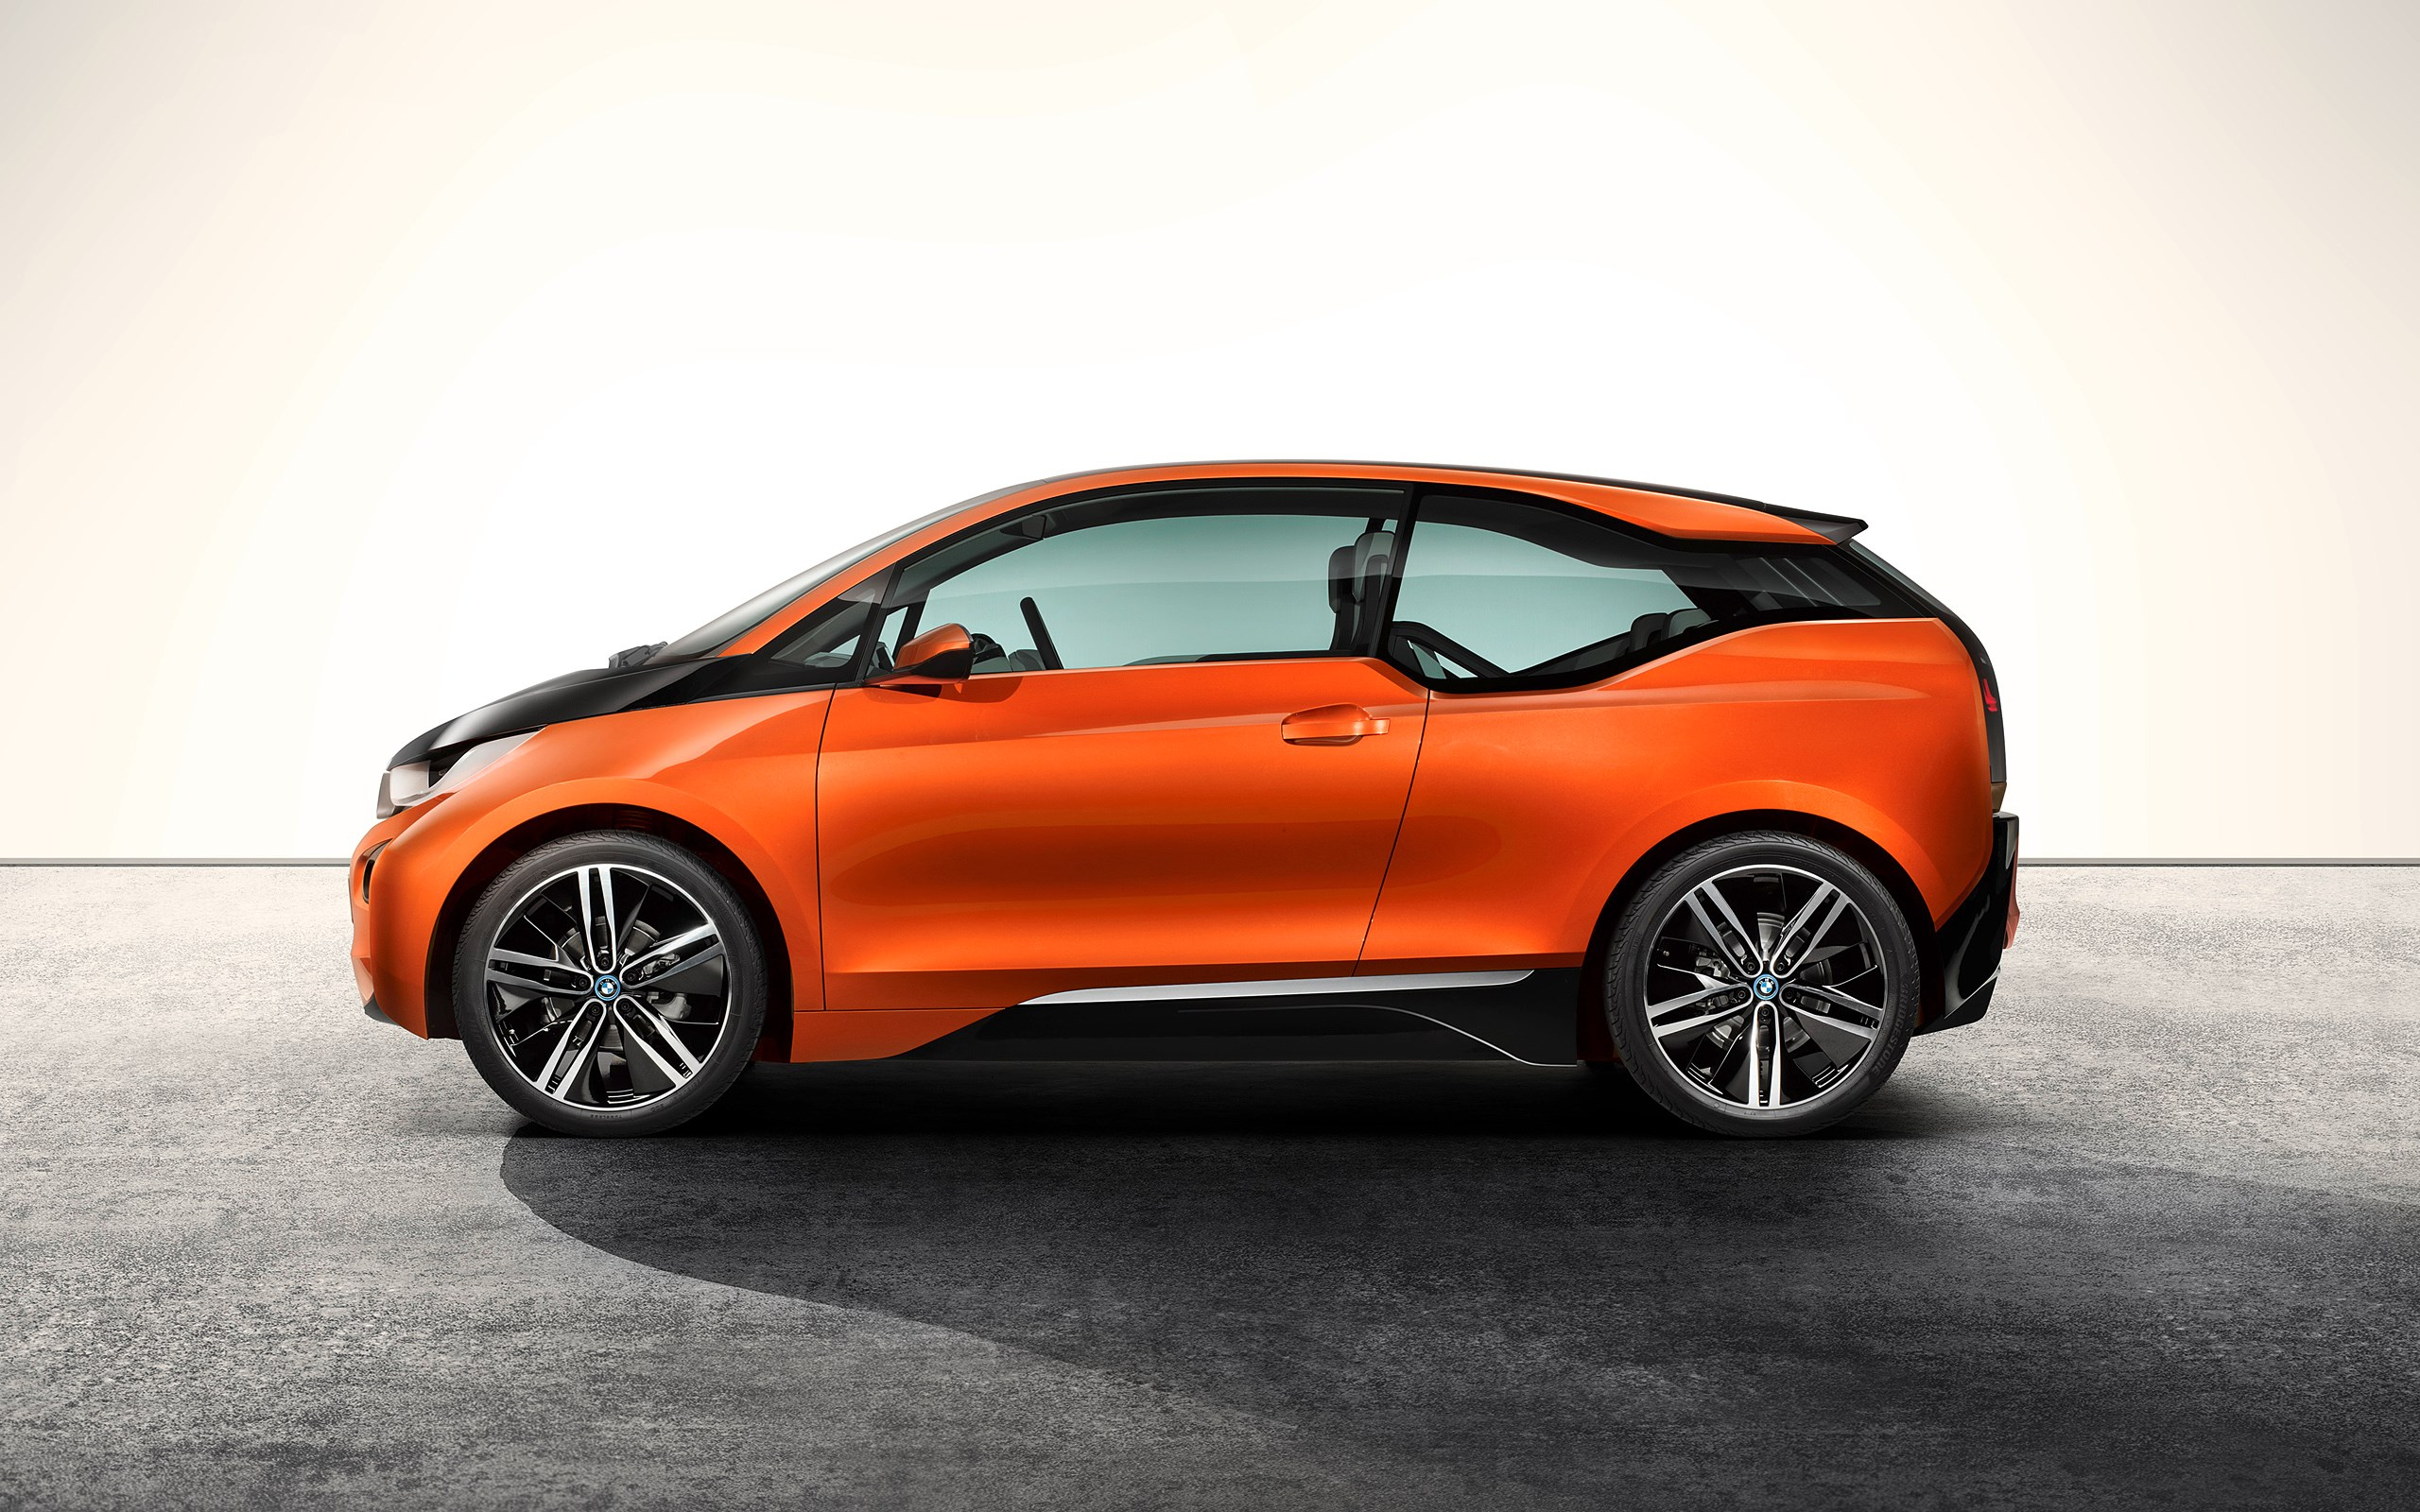 2560x1600 - BMW i3 Concept Wallpapers 20